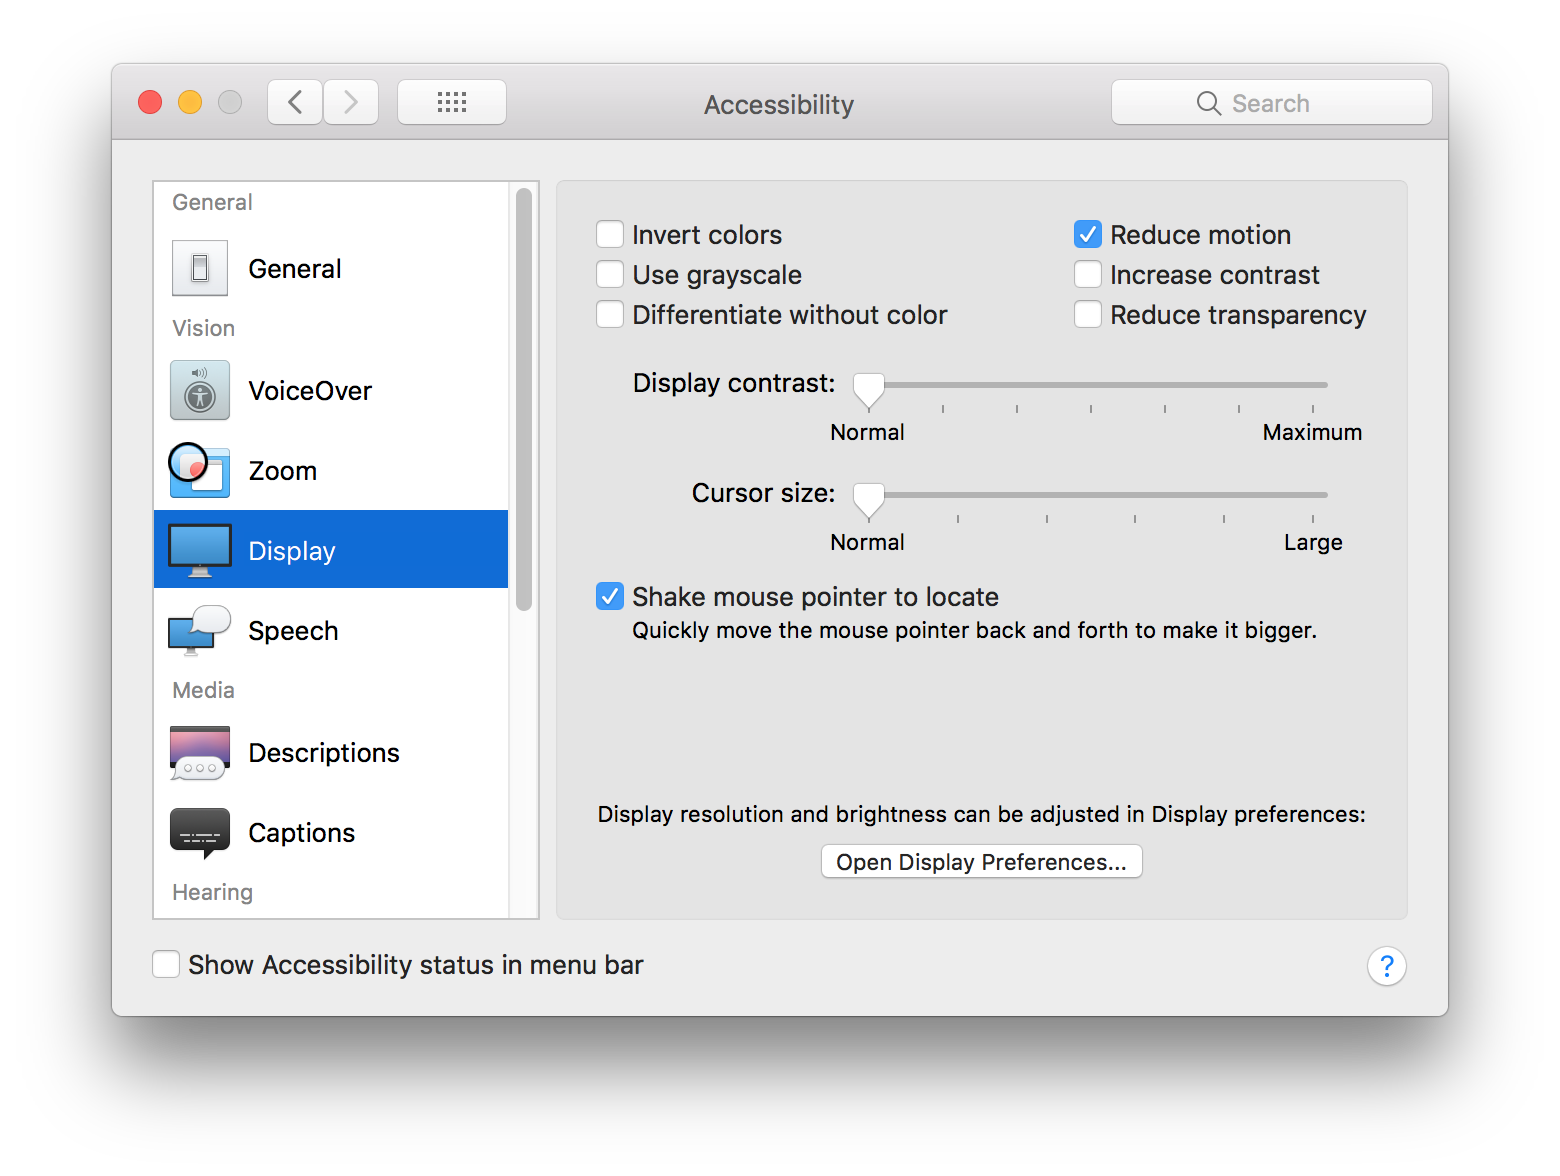 Reduced motion option in accessibility settings from macOS